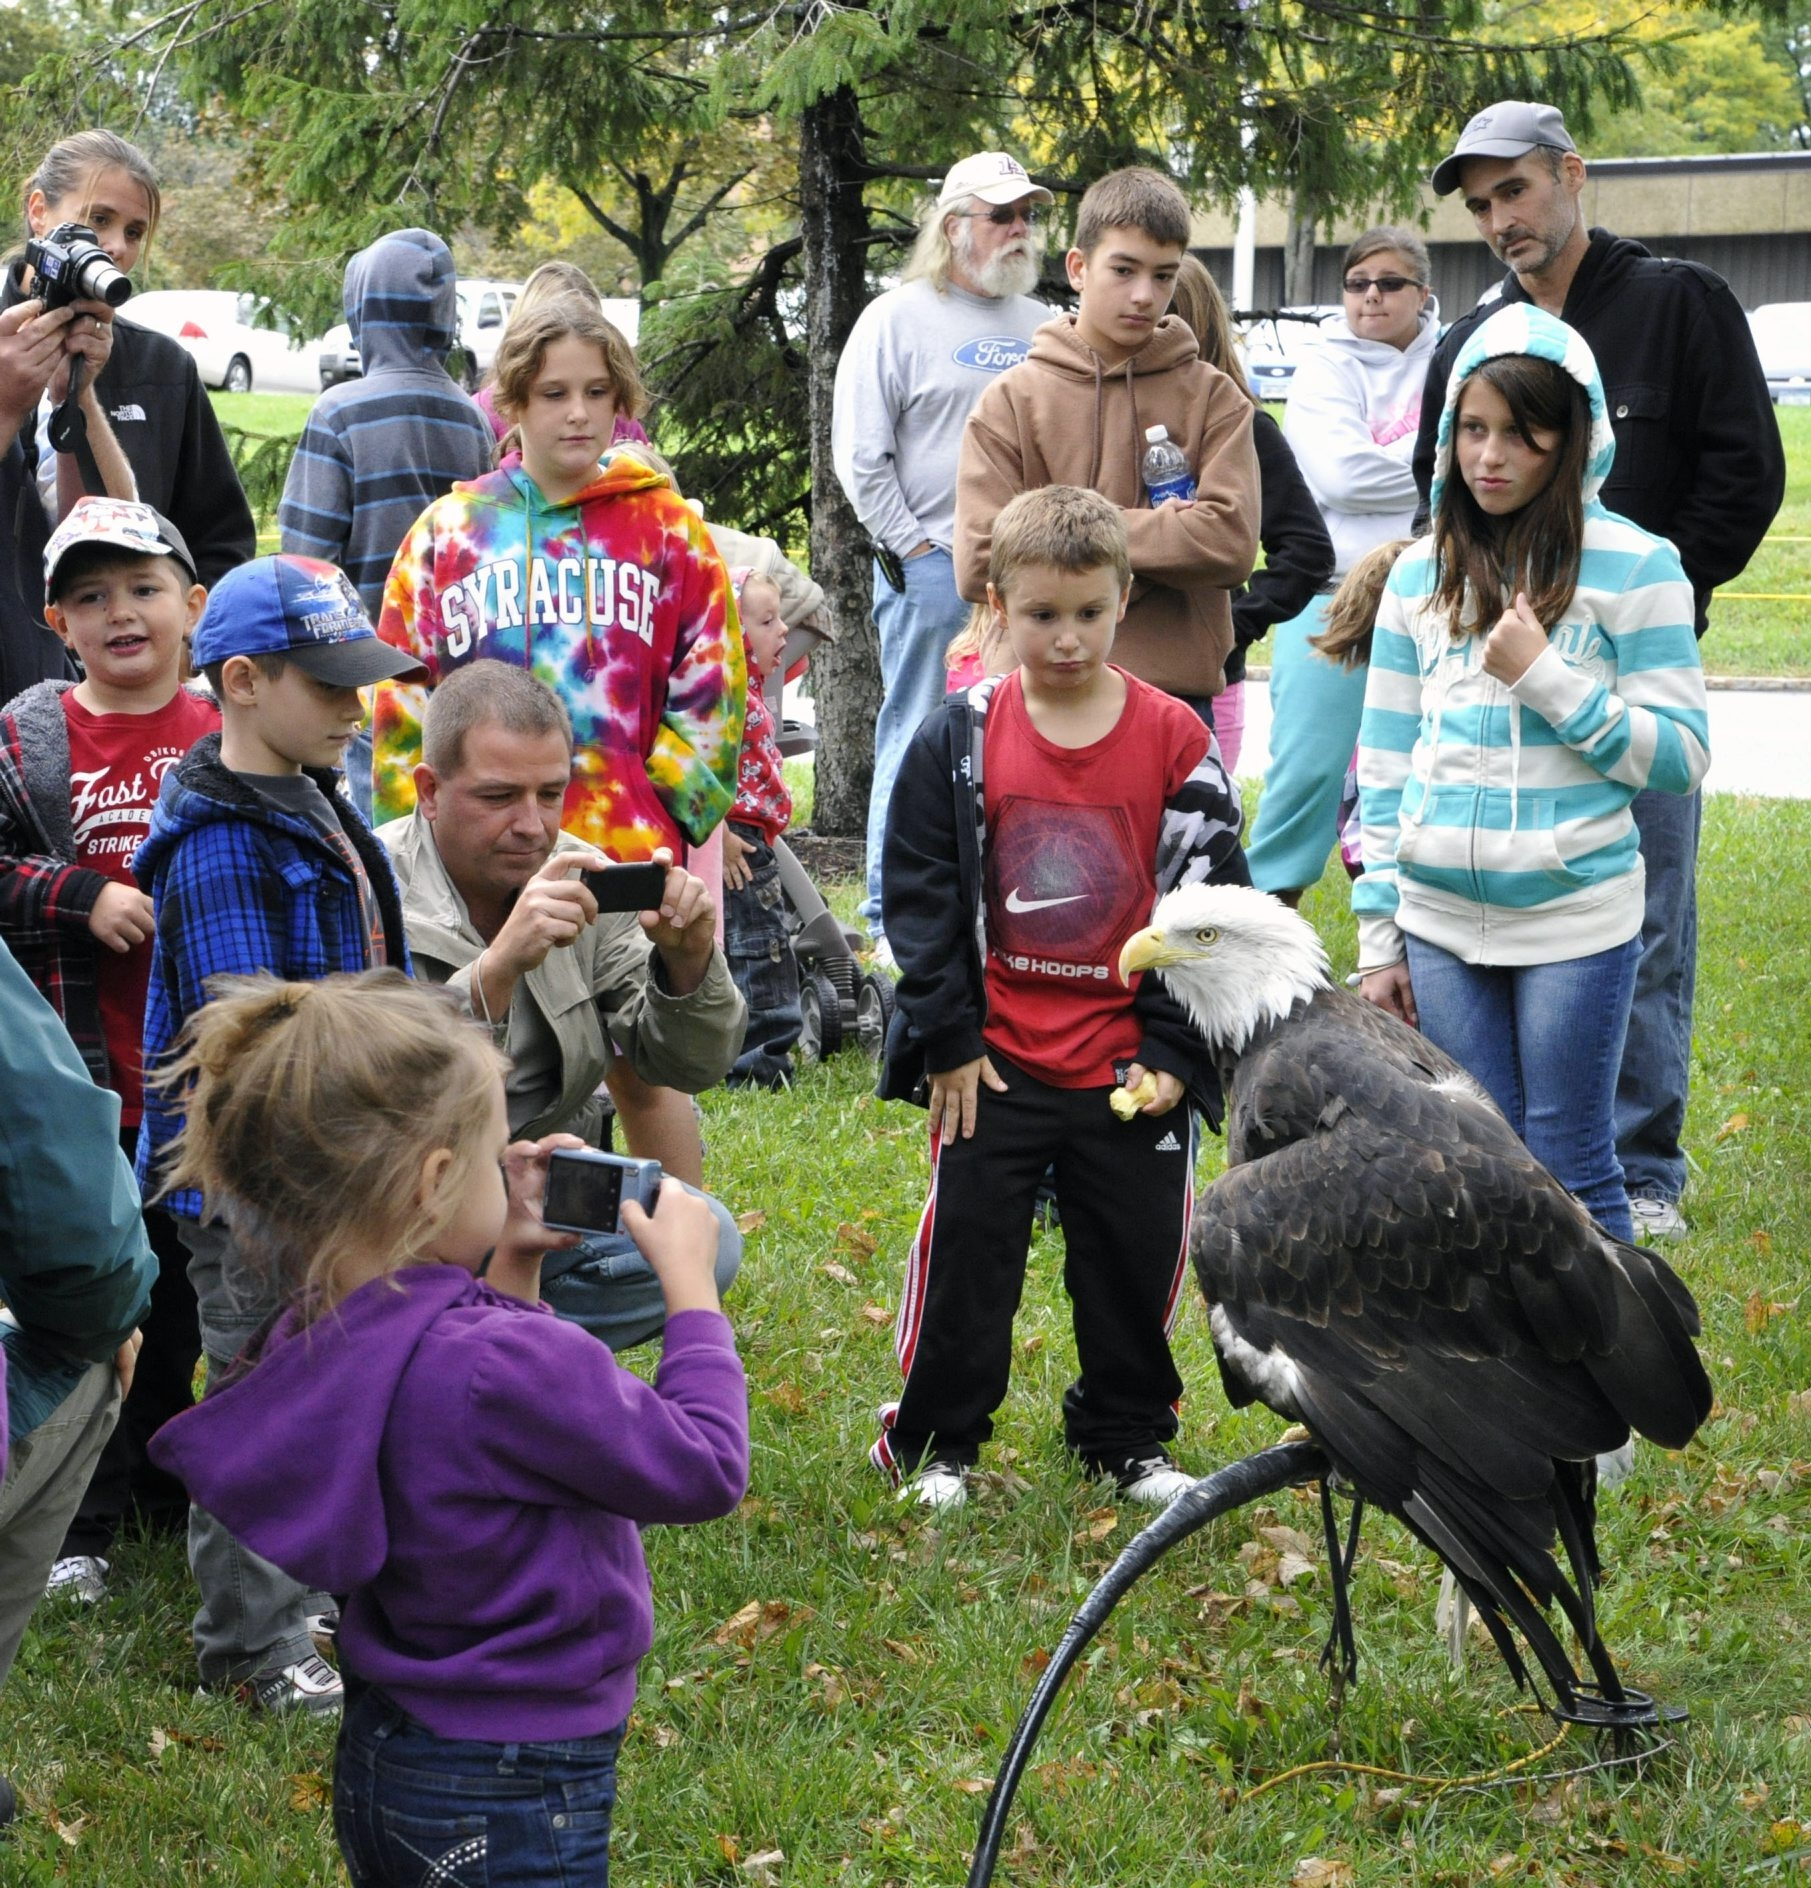 Liberty the bald eagle, viewed here by youngsters, is a feature of the New York Power Authority's 28th Wildlife Festival next weekend along with other raptors such as a screech owl, peregrine falcon and red-tail hawk.